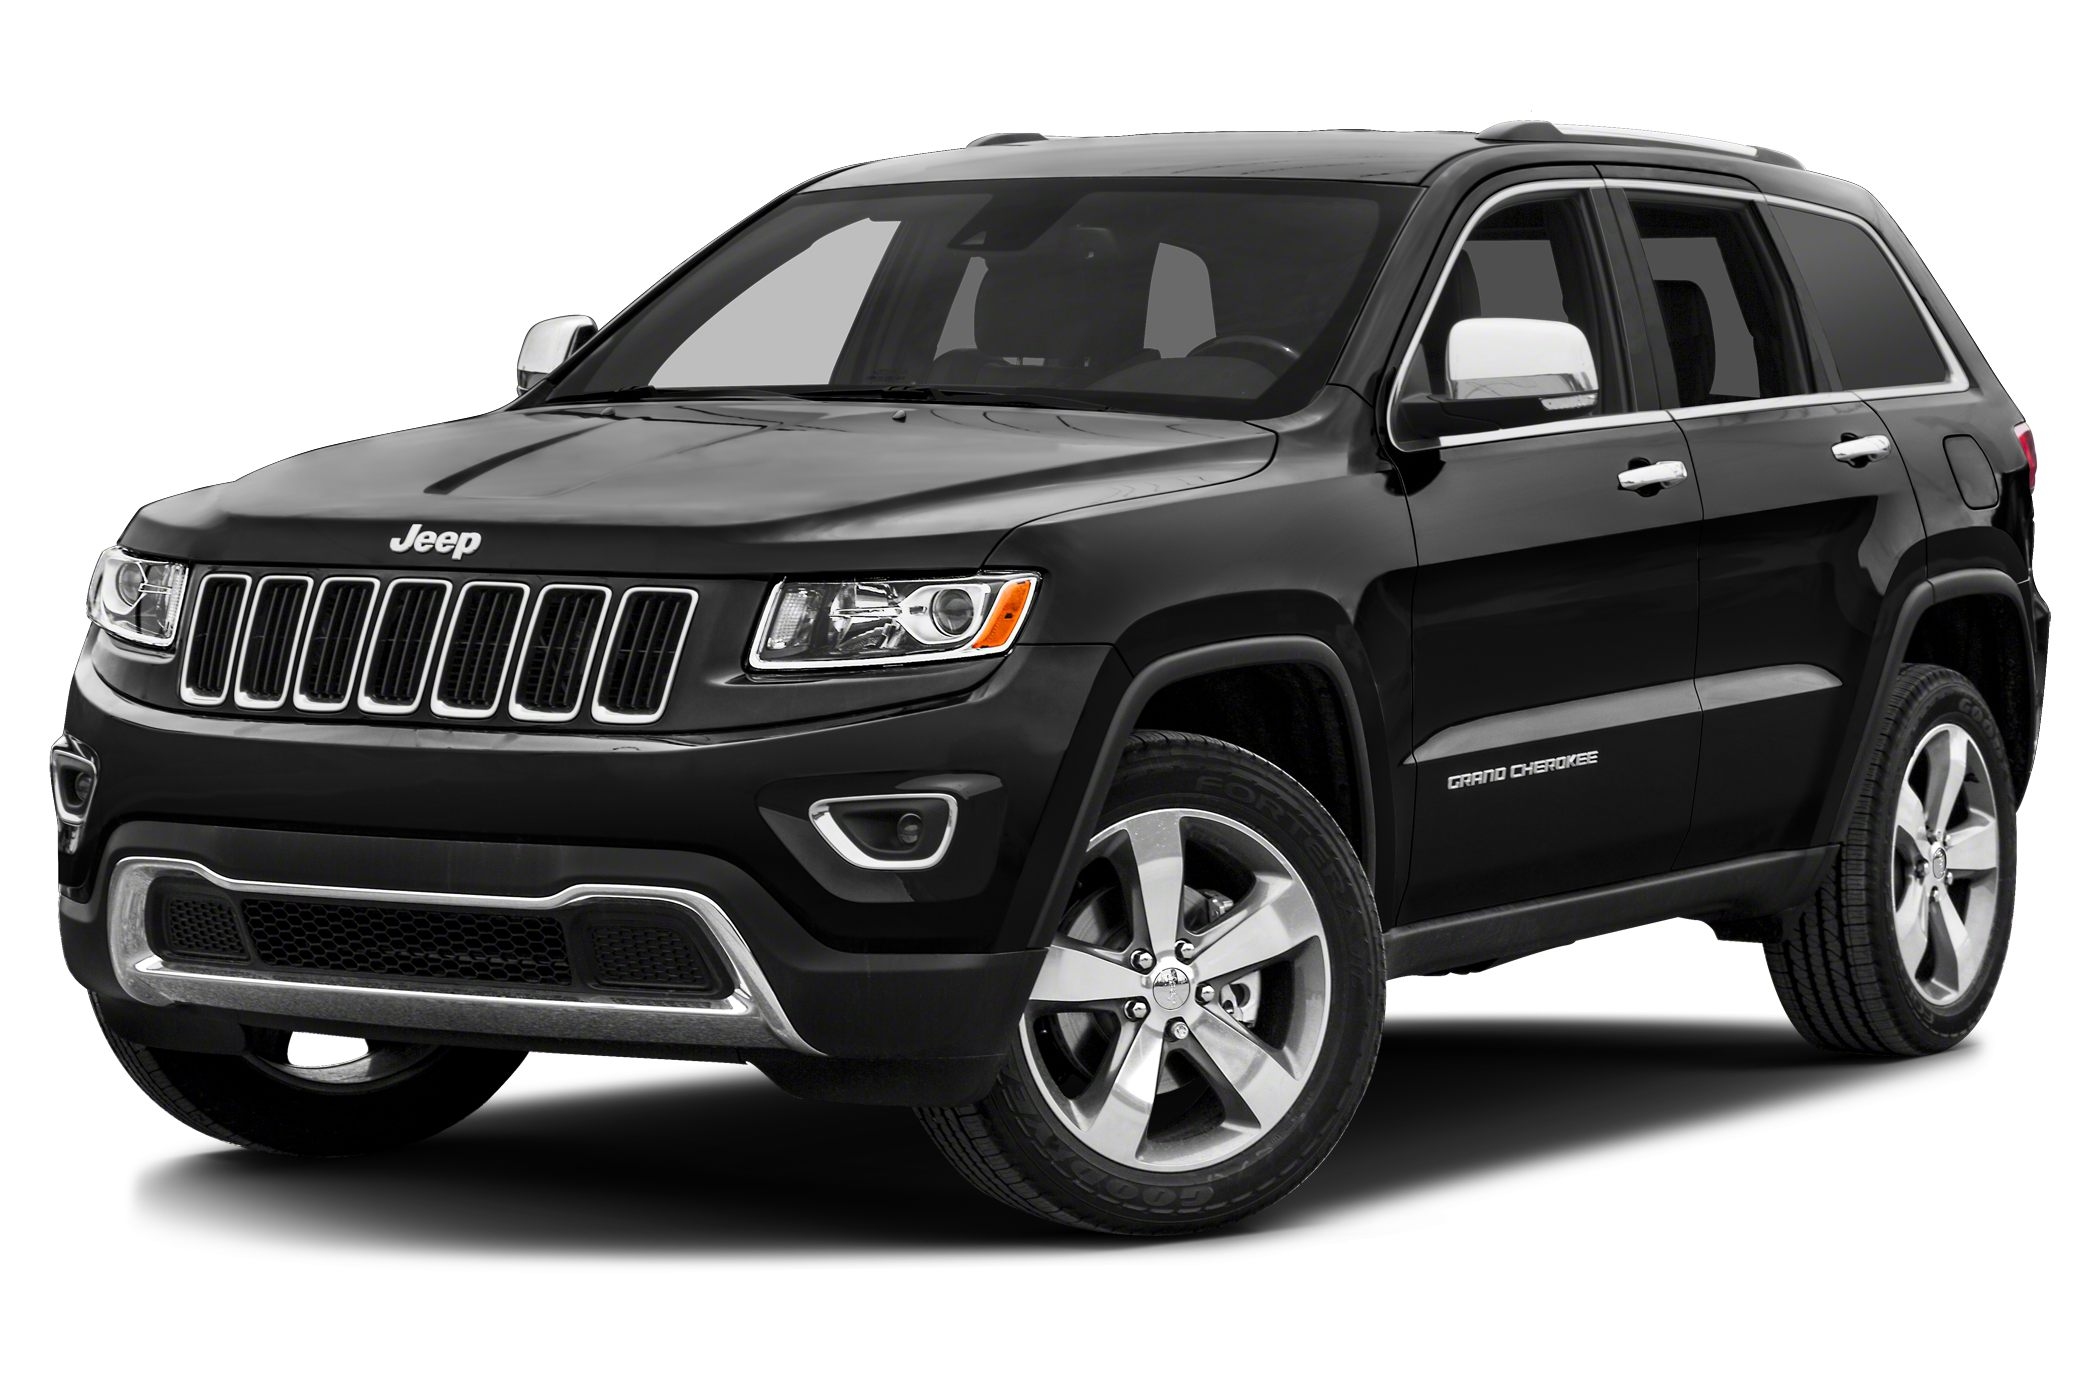 2015 Jeep Grand Cherokee Laredo SUV for sale in San Jose for $36,285 with 11 miles.